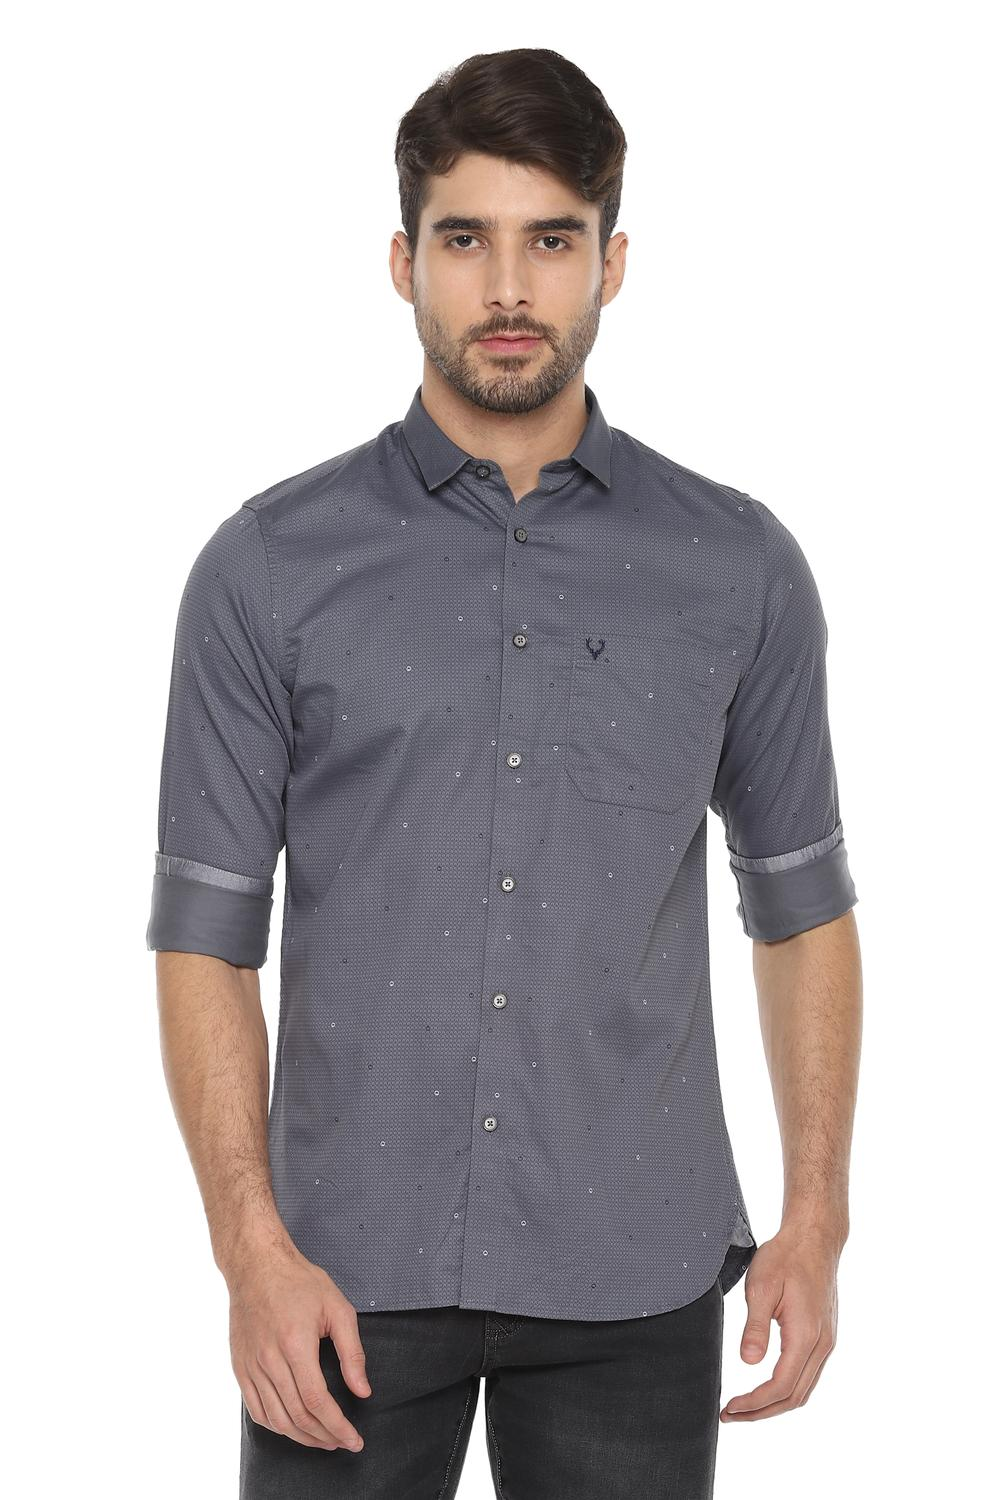 order online shopping release date: Allen Solly Shirts, Allen Solly Grey Shirt for Men at Allensolly.com